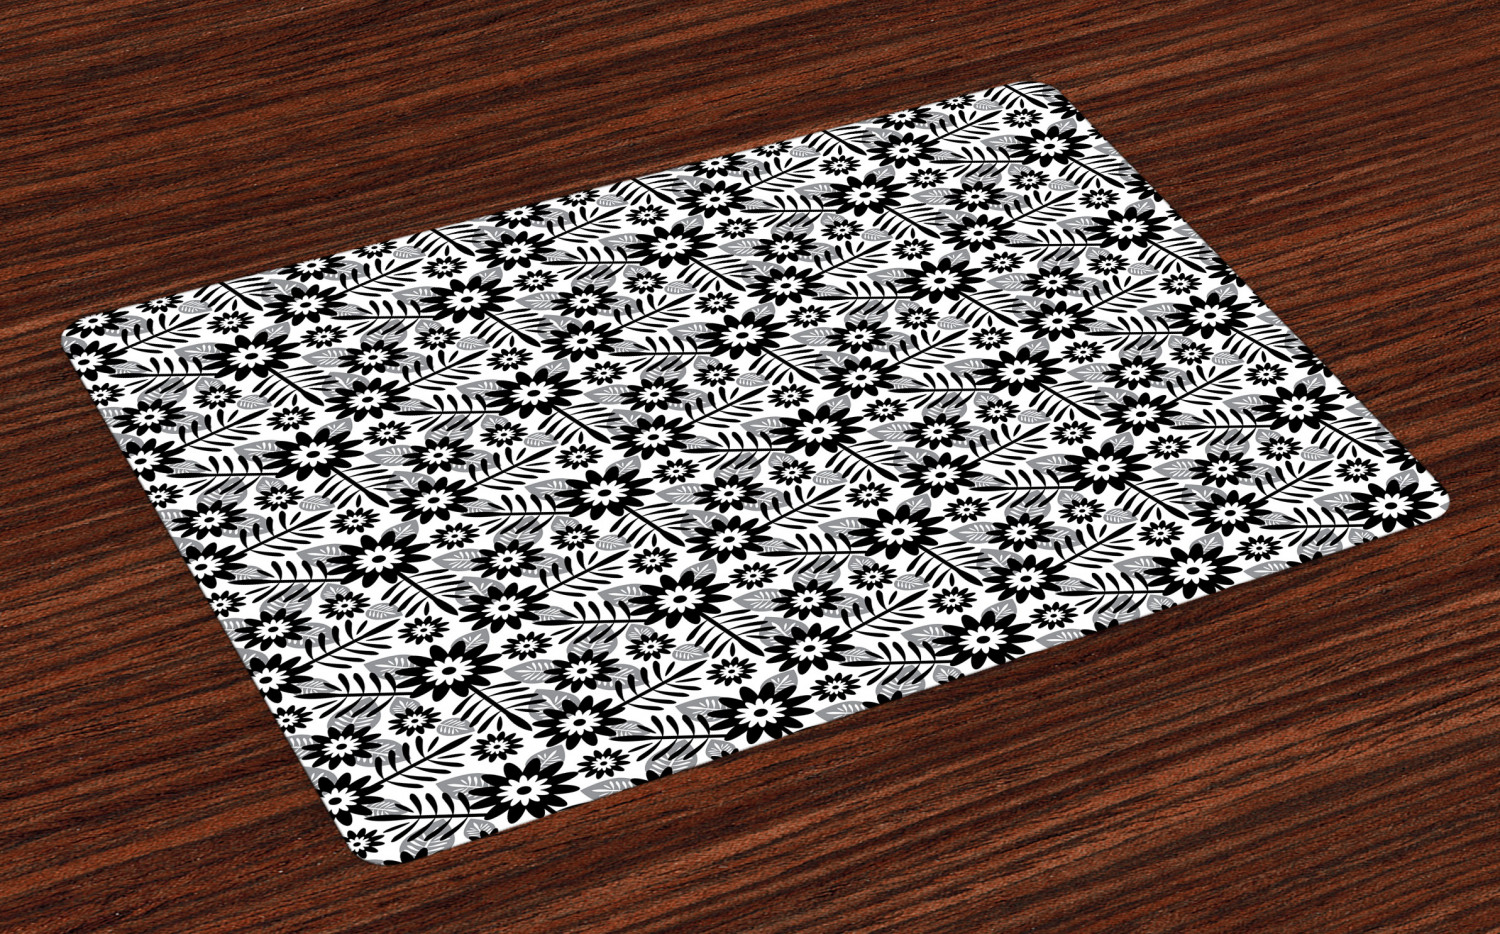 black and white placemats set of 4 washable fabric place mats for table decor ebay. Black Bedroom Furniture Sets. Home Design Ideas